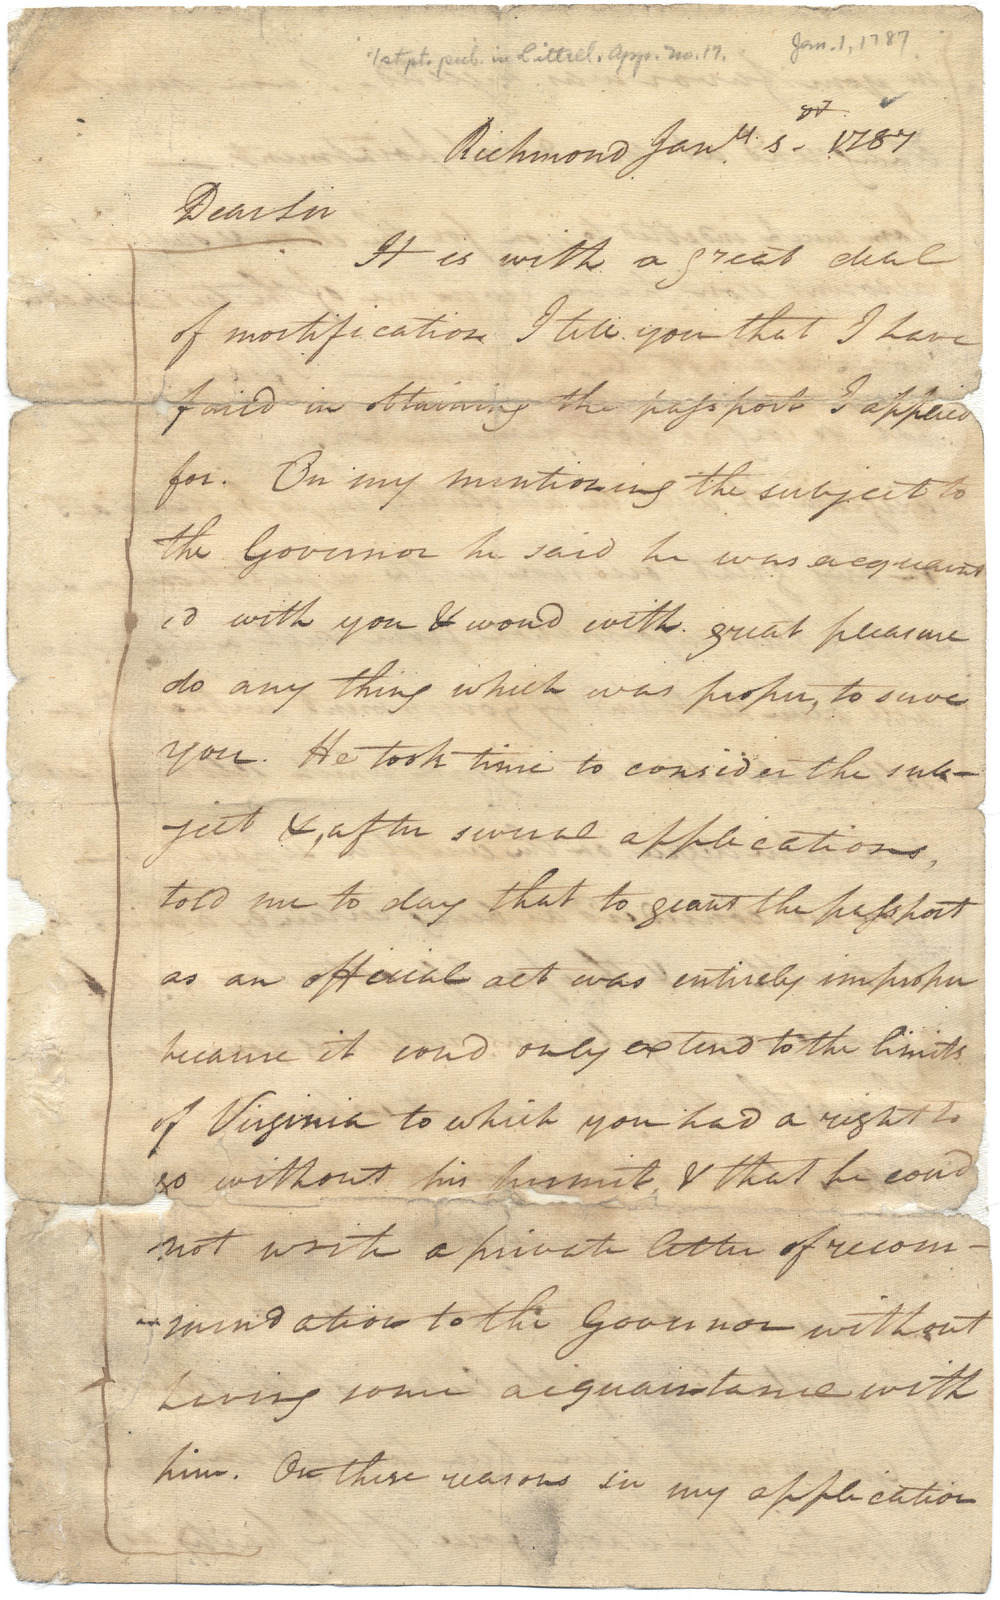 Letter from John Marshall to James Wilkinson